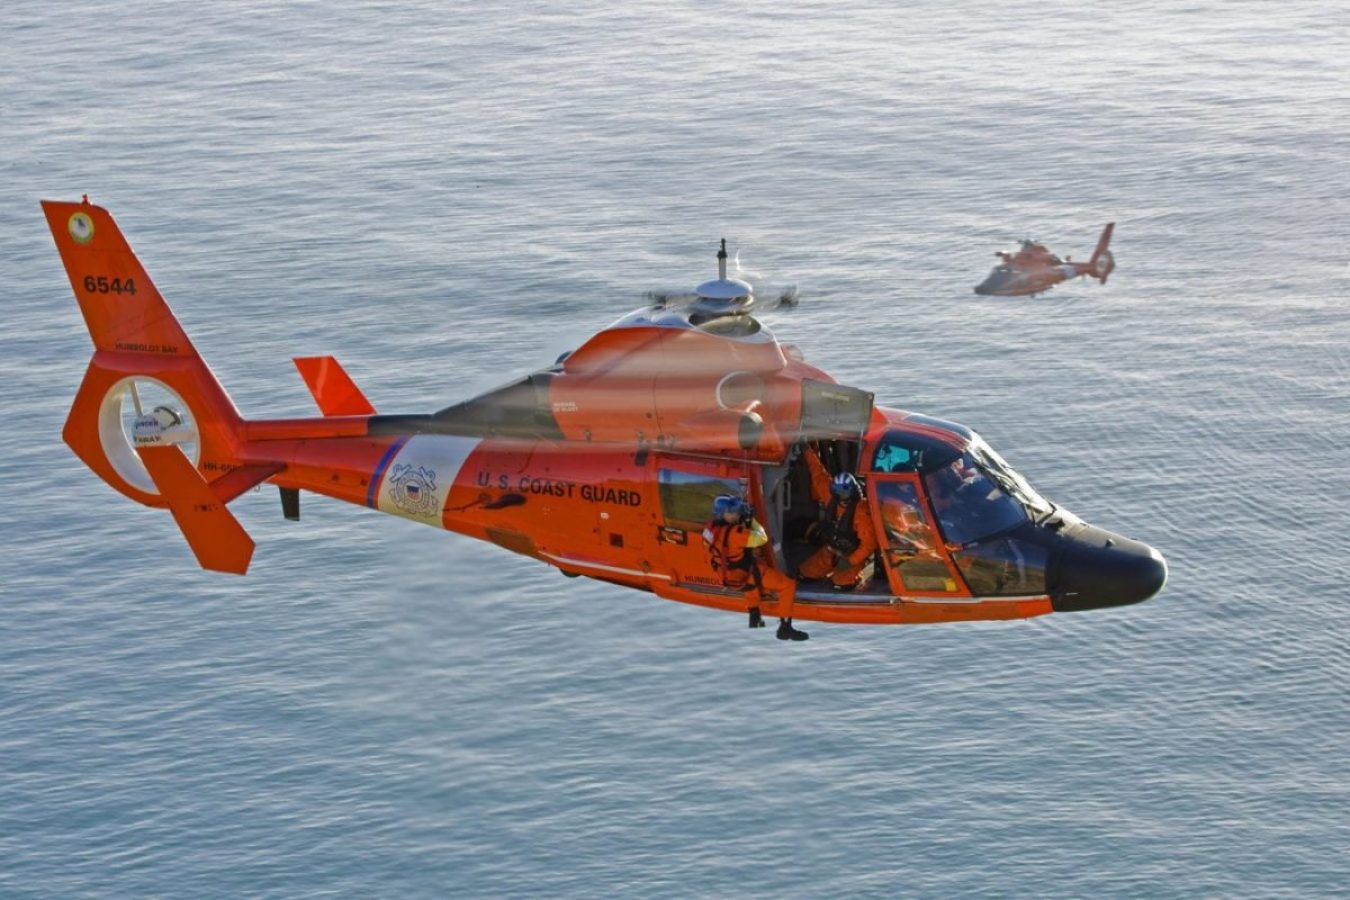 An MH-65 Dolphin helicopter crew from Coast Guard Sector Humboldt Bay conducts hoist training off the coast of Trinidad Head, Jan. 15, 2009.